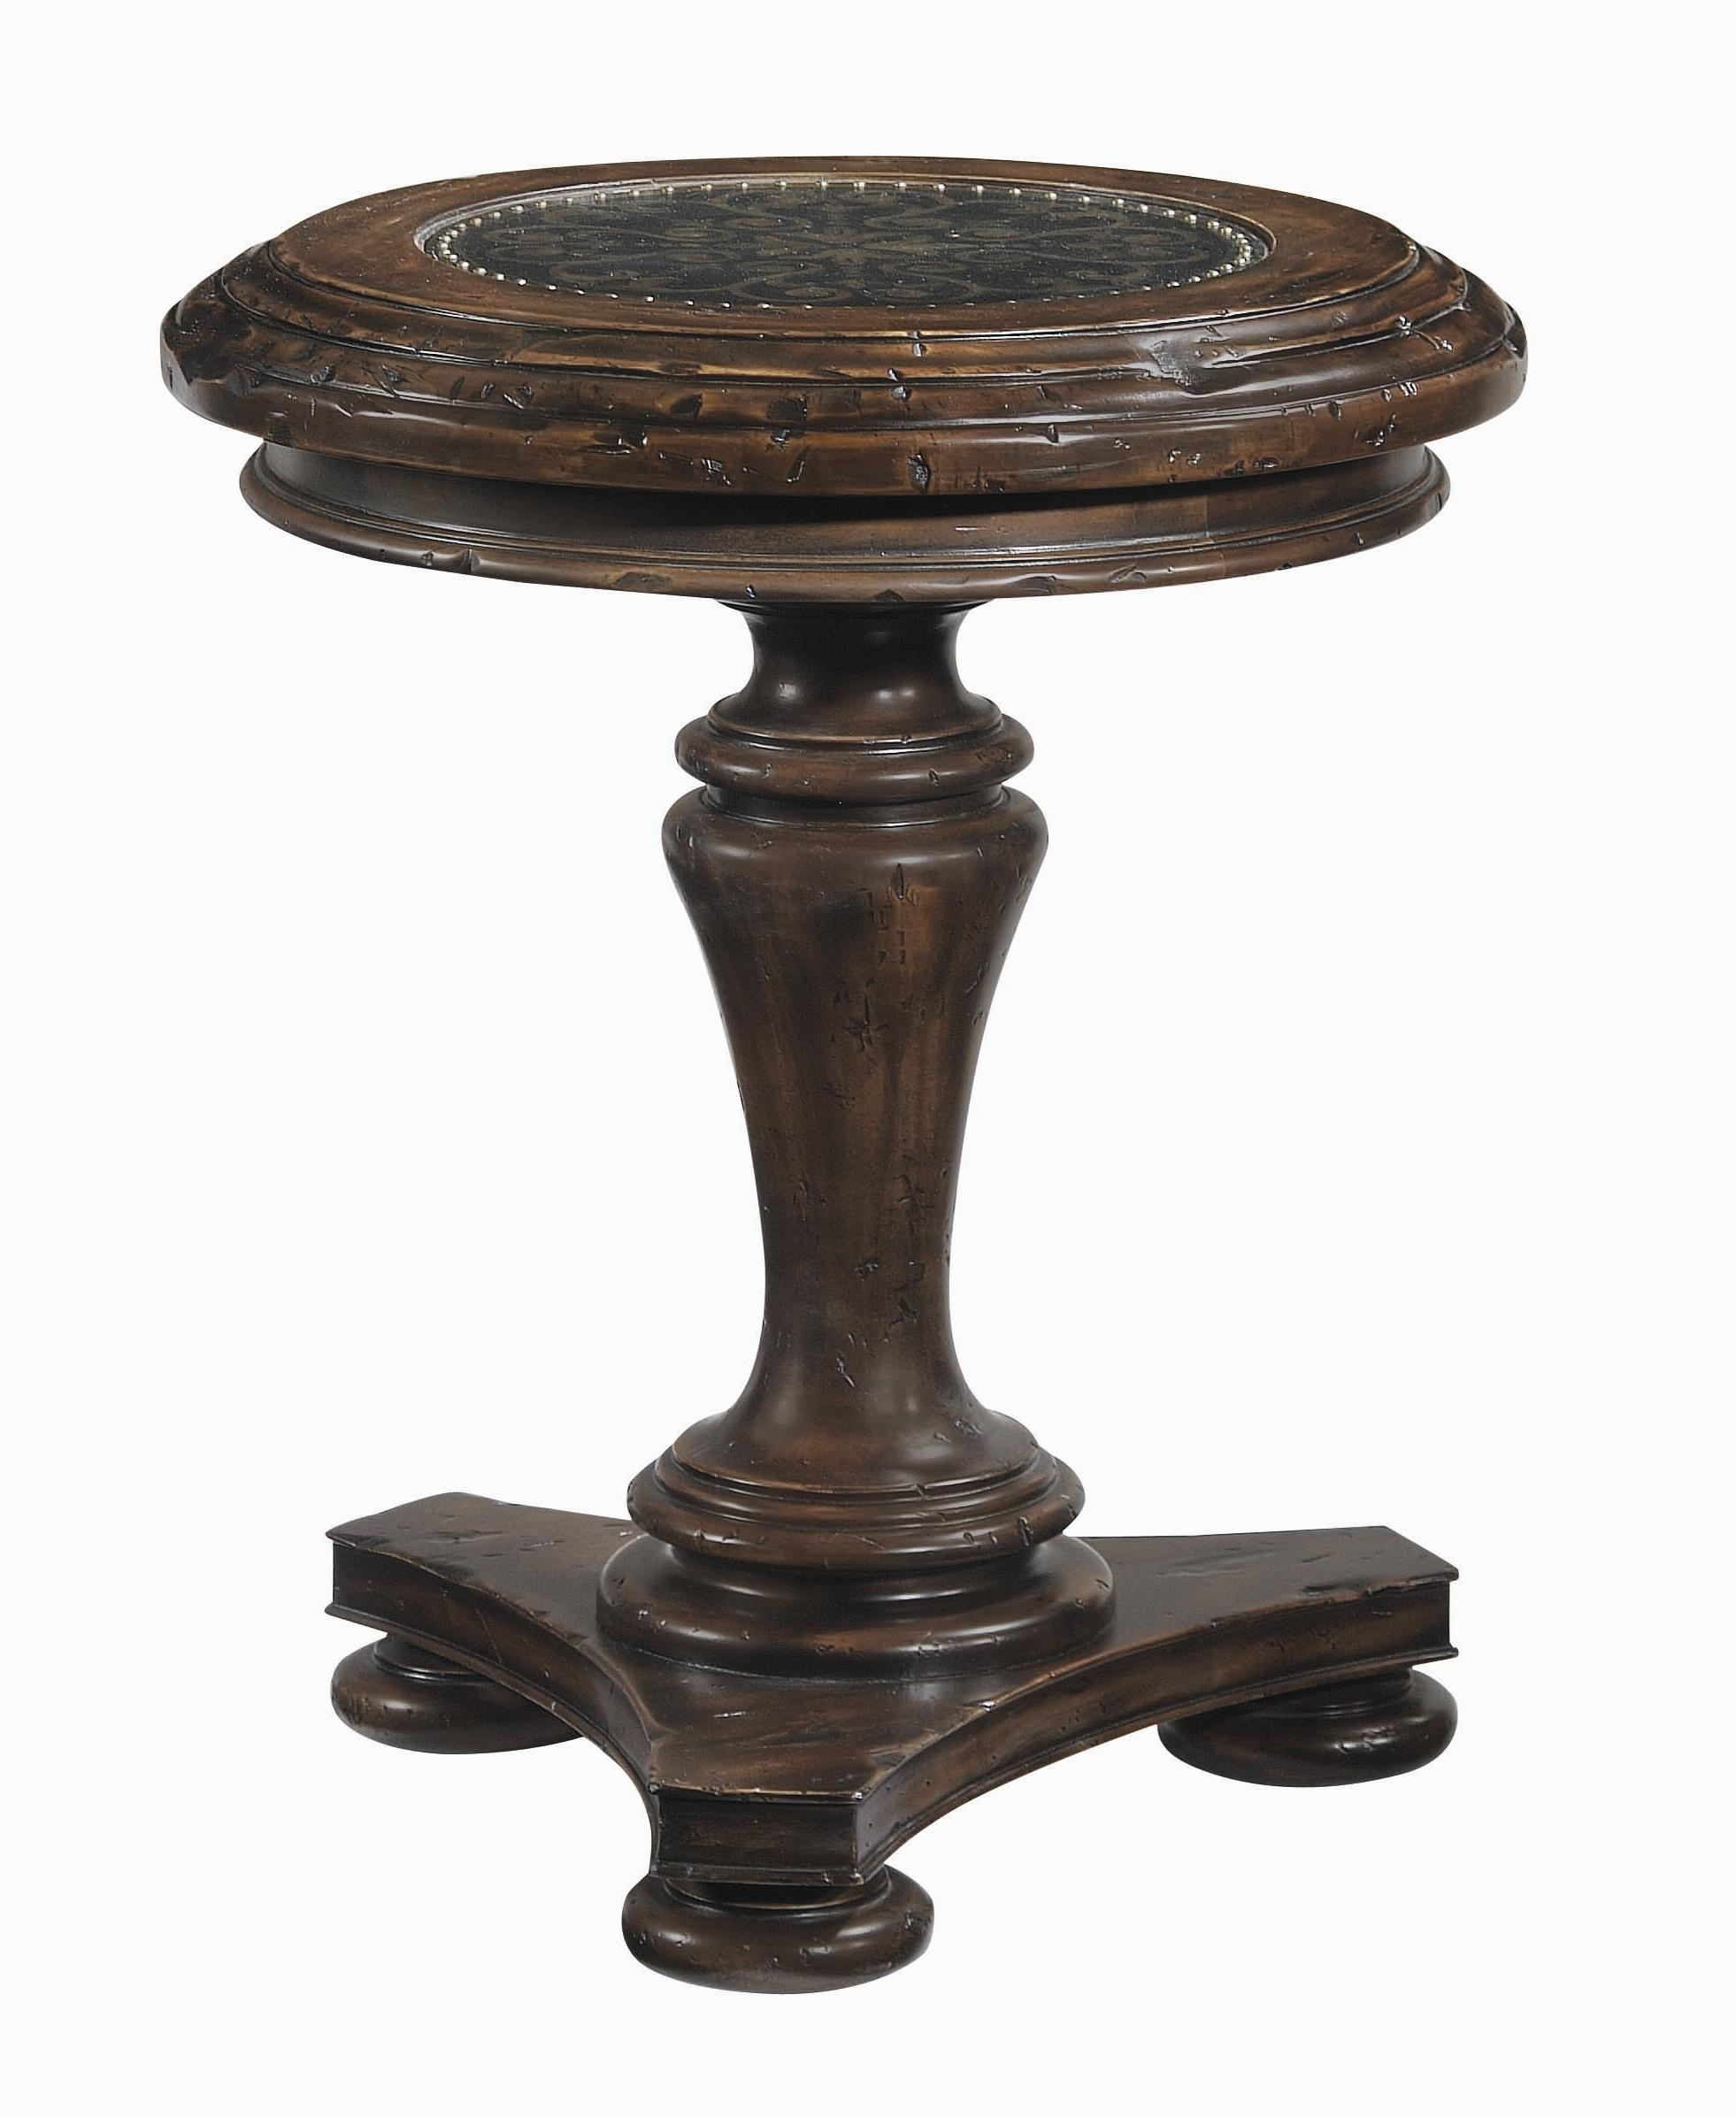 Bernhardt Manchester Manchester Chairside End Table - Item Number: 437-123